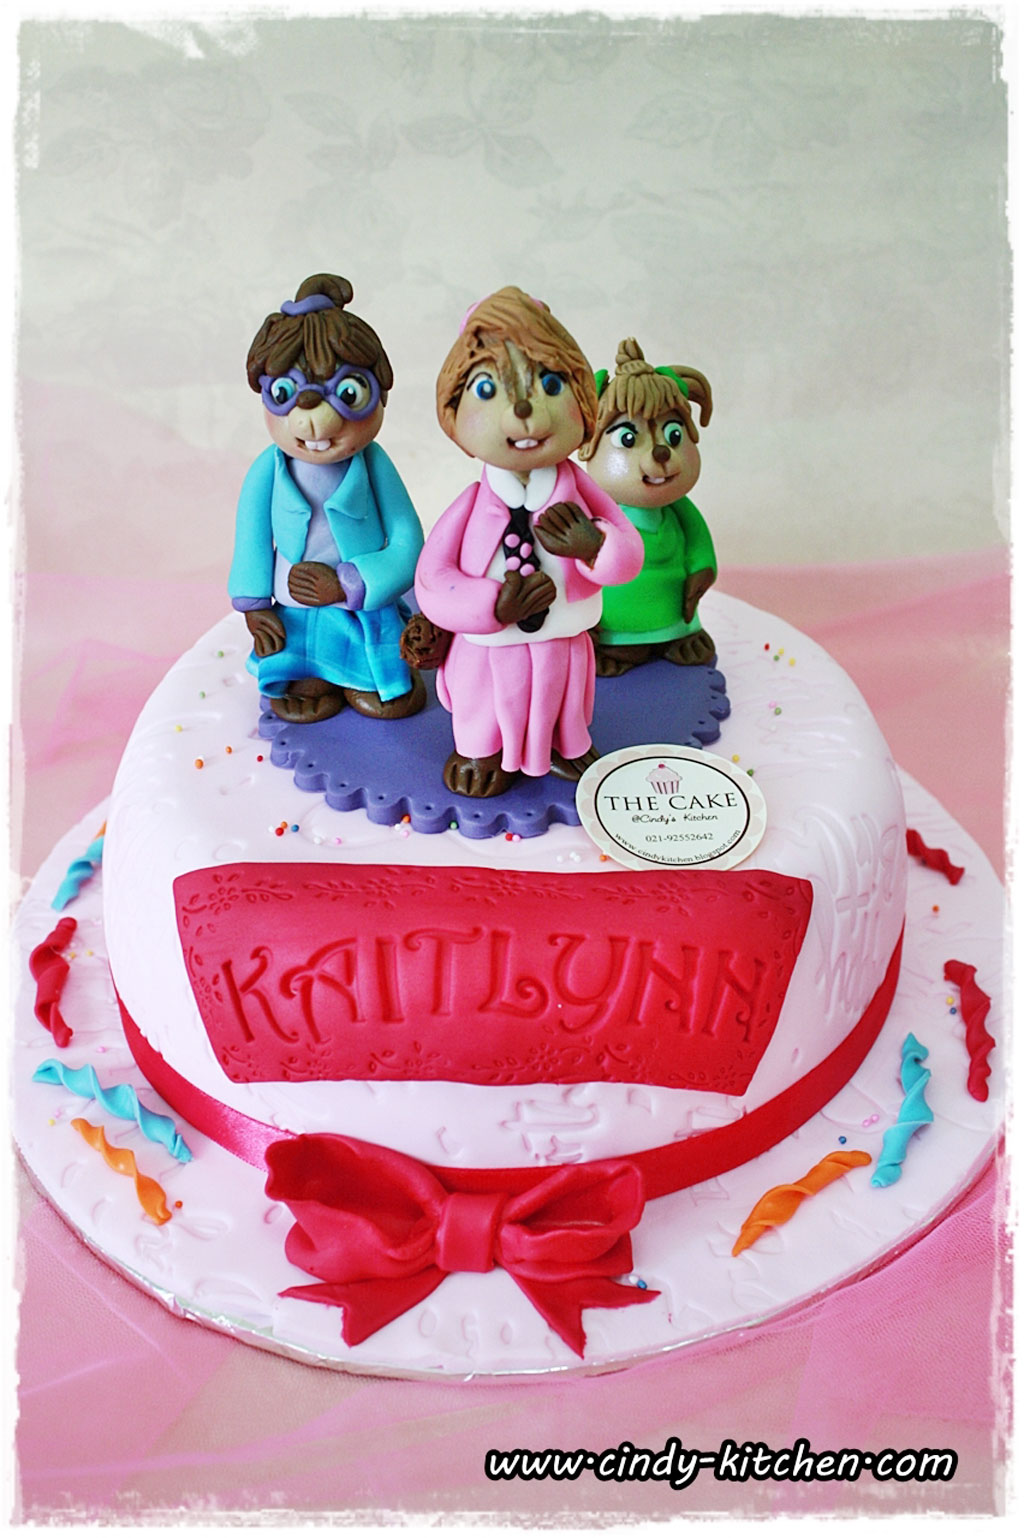 Cute Fondant Chipettes Birthday Cake Designs Birthday Cake ...